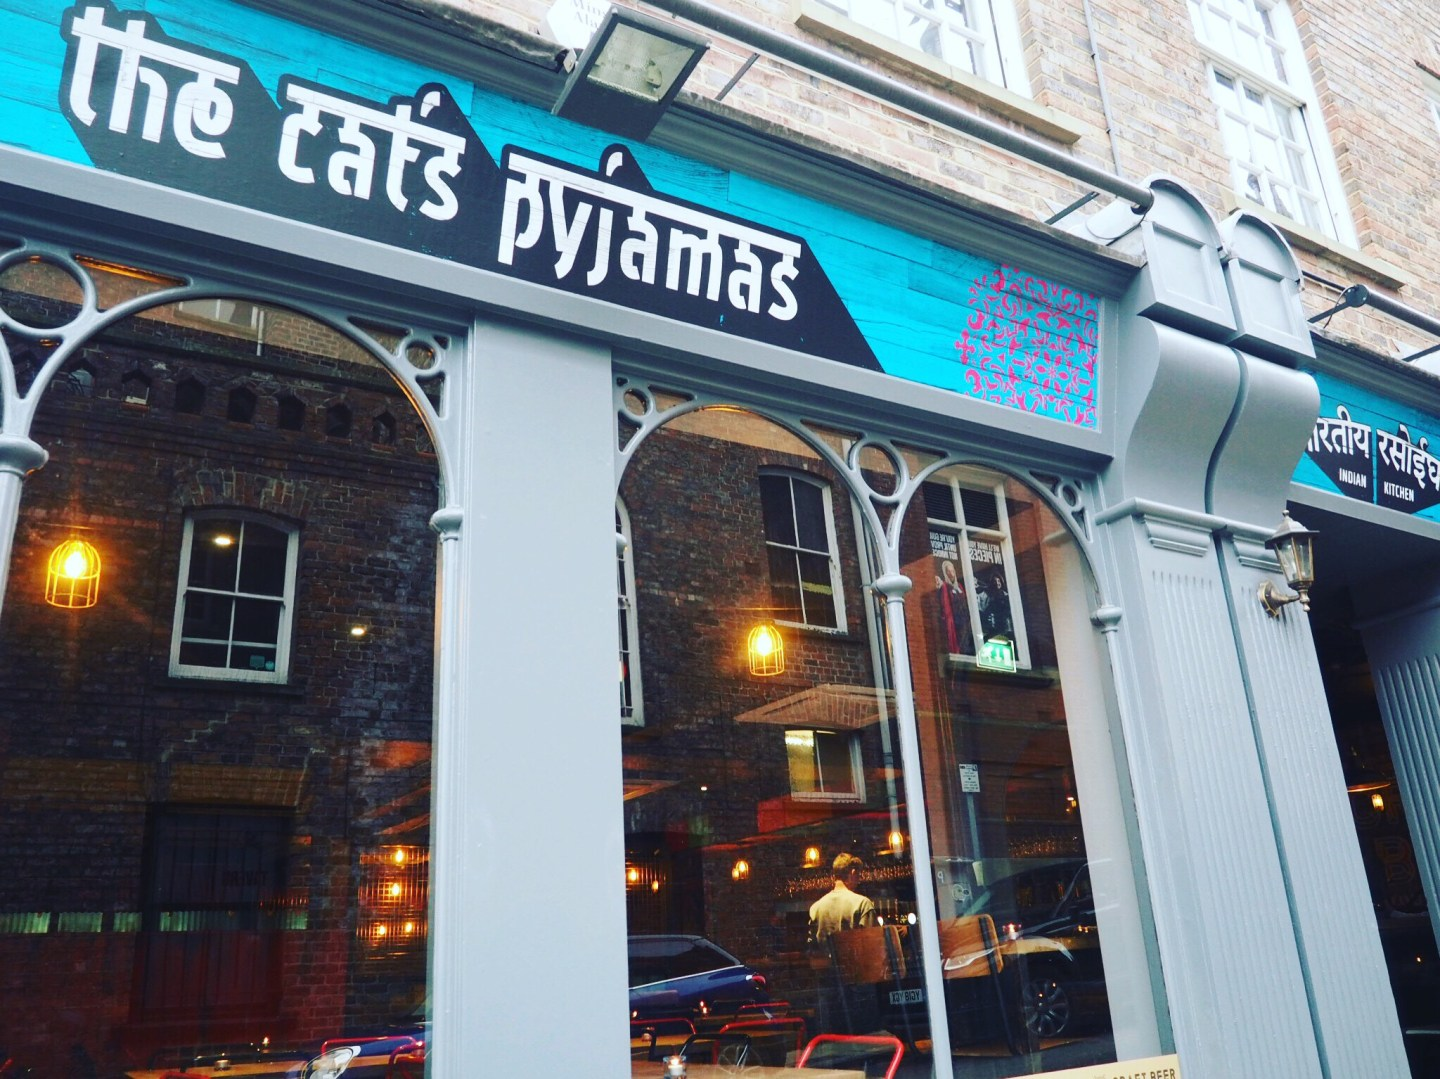 The Cat's Pyjamas – York